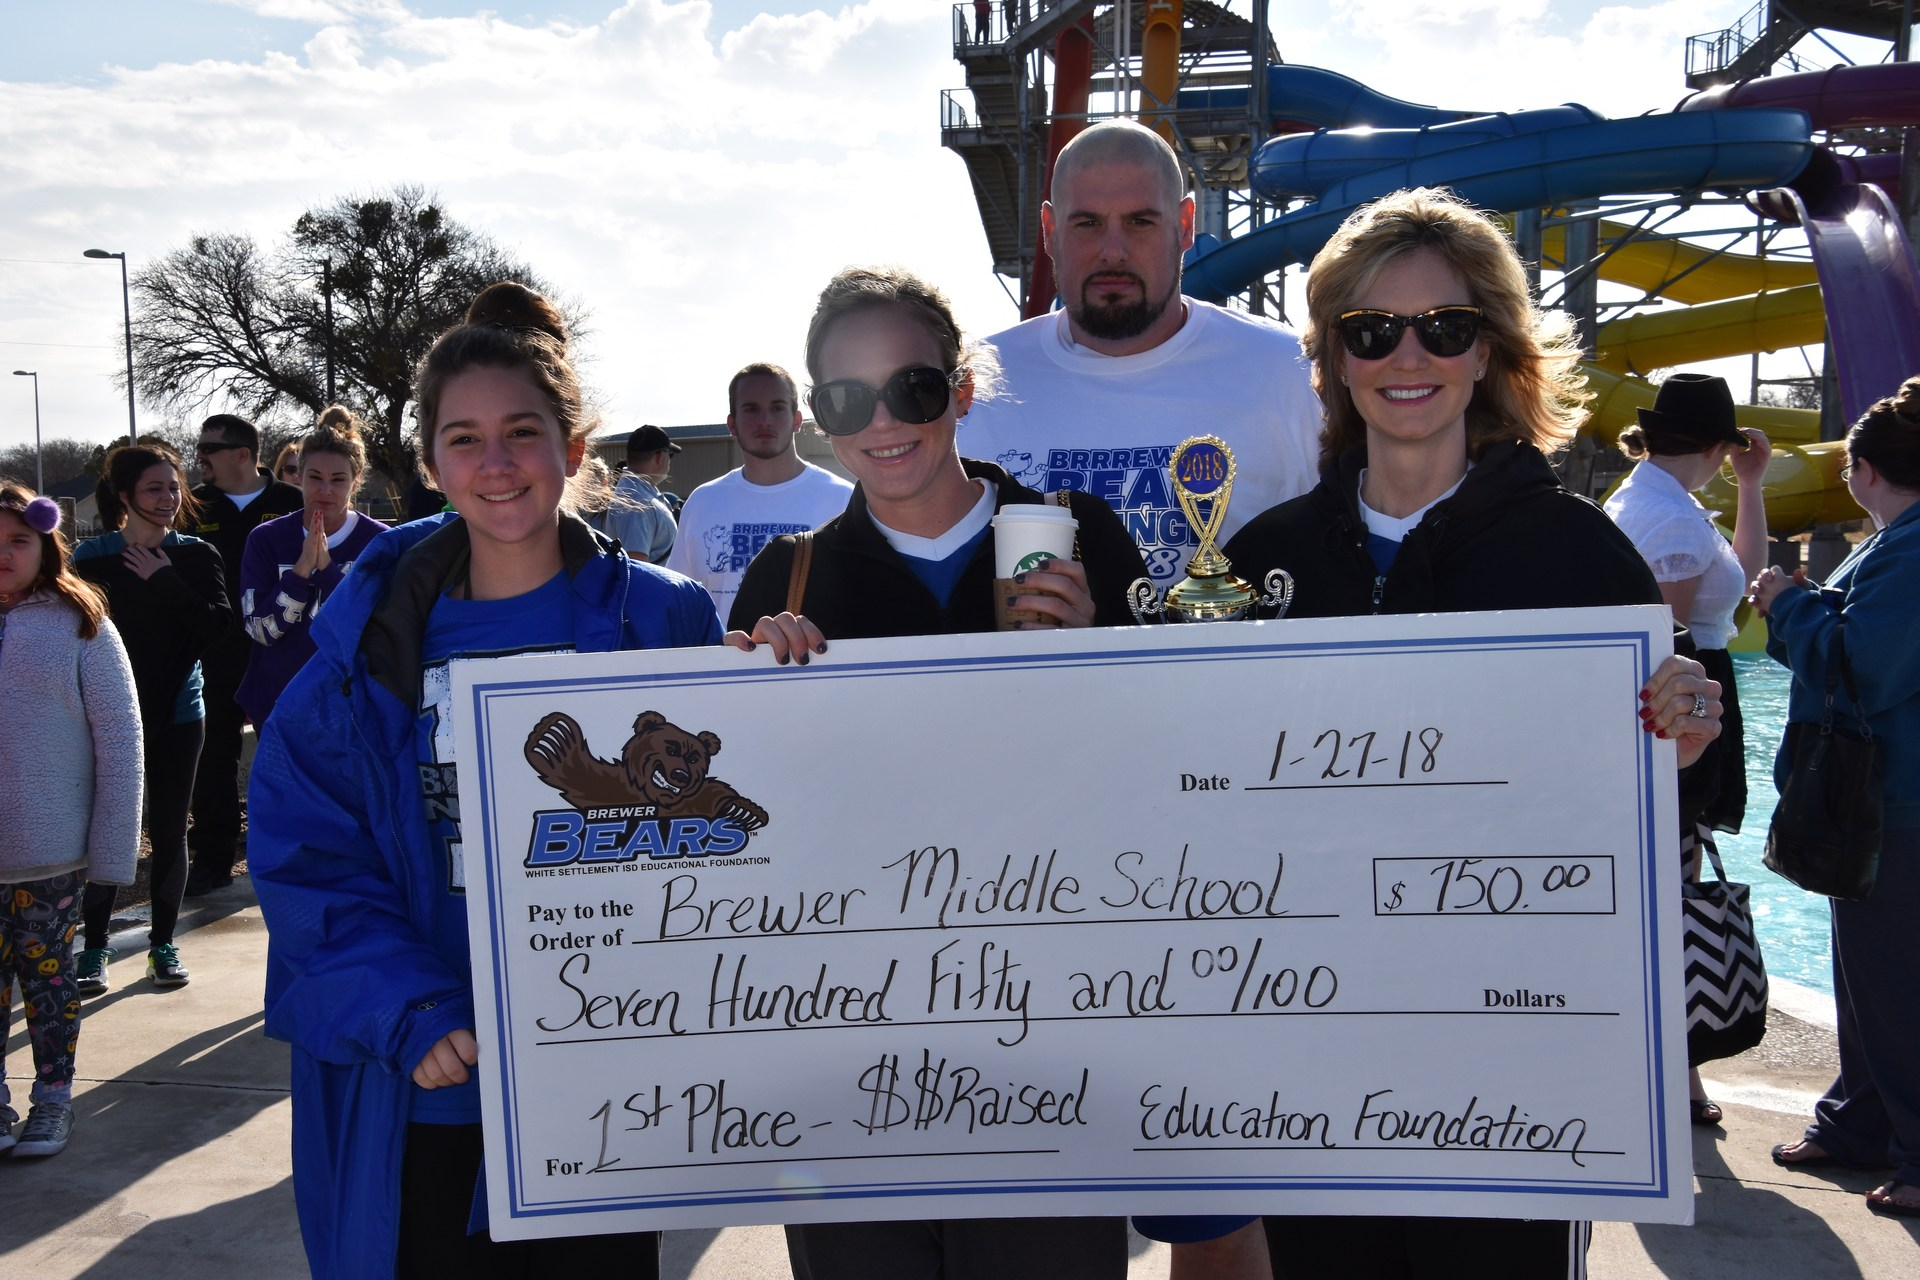 Brewer Middle School was the 1st place winner in the BRRRewer Bear Plunge fundraiser.